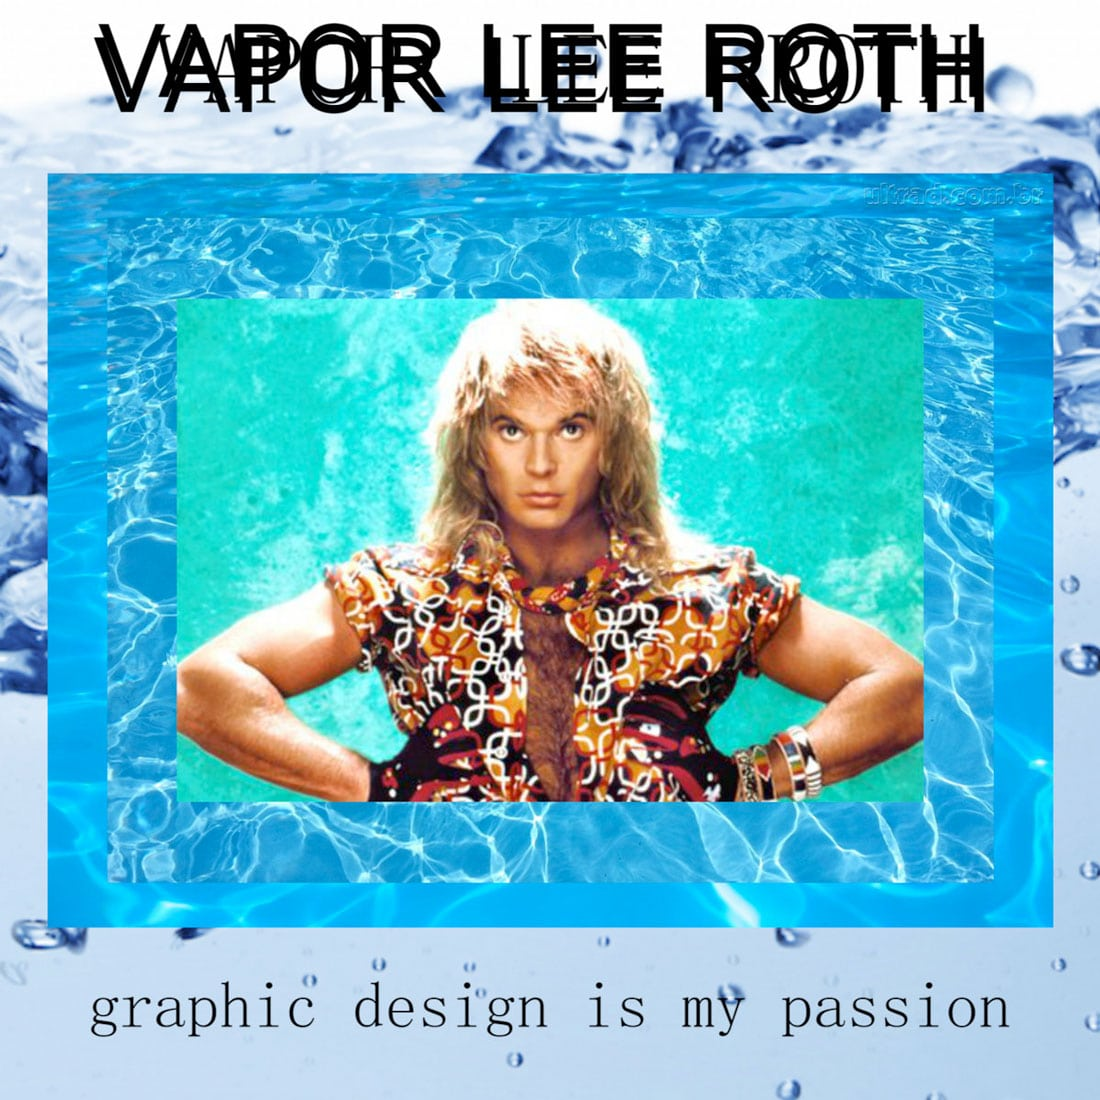 passion-roth Graphic Design Is My Passion: 20 Meme Picks design tips